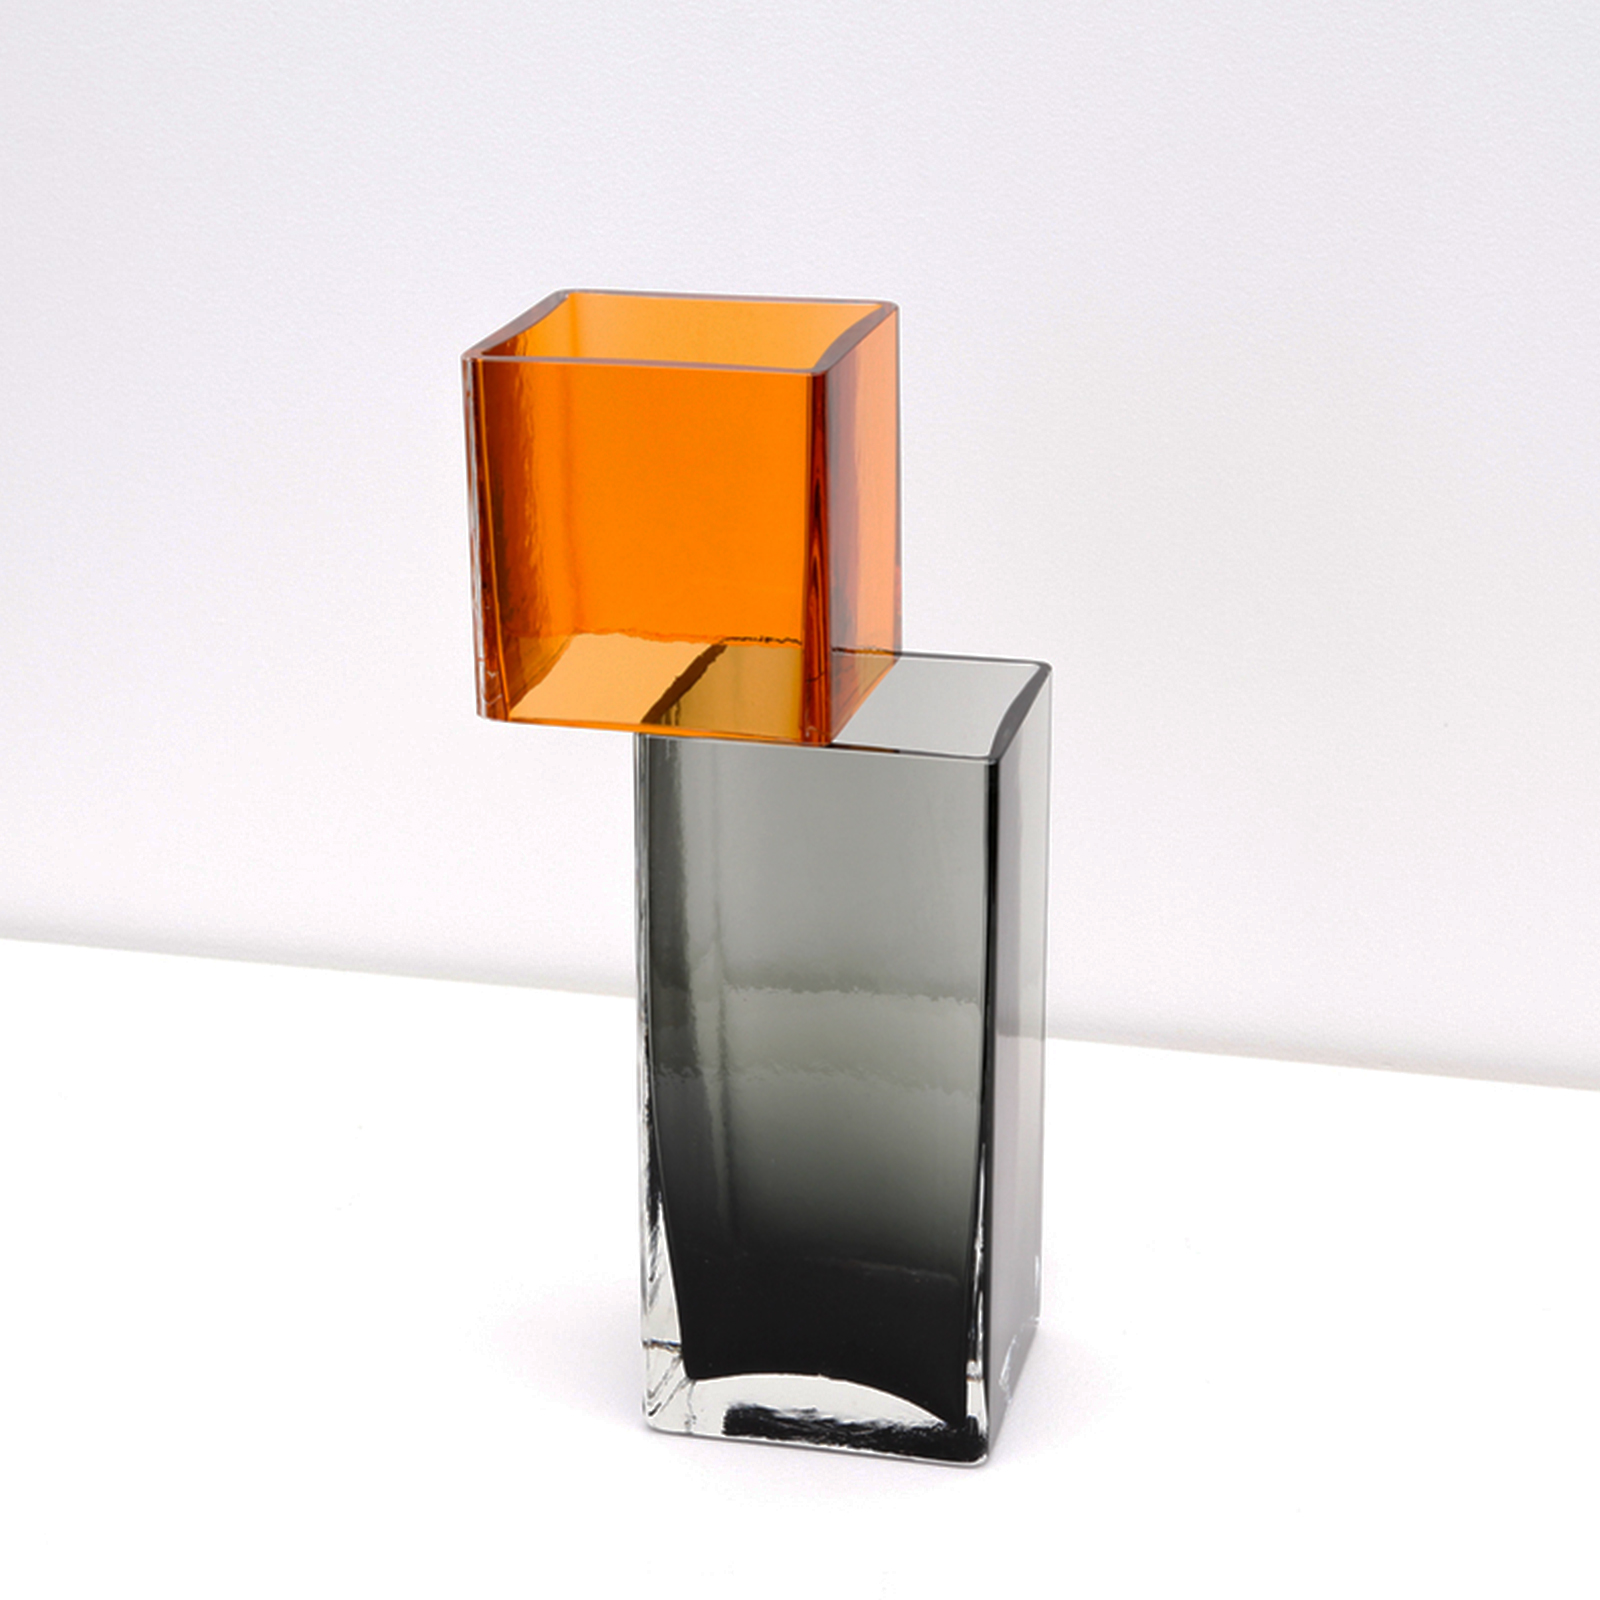 Graft Vase B In Charcoal And Amber Hand Blown Glass By Liam Fleming 2